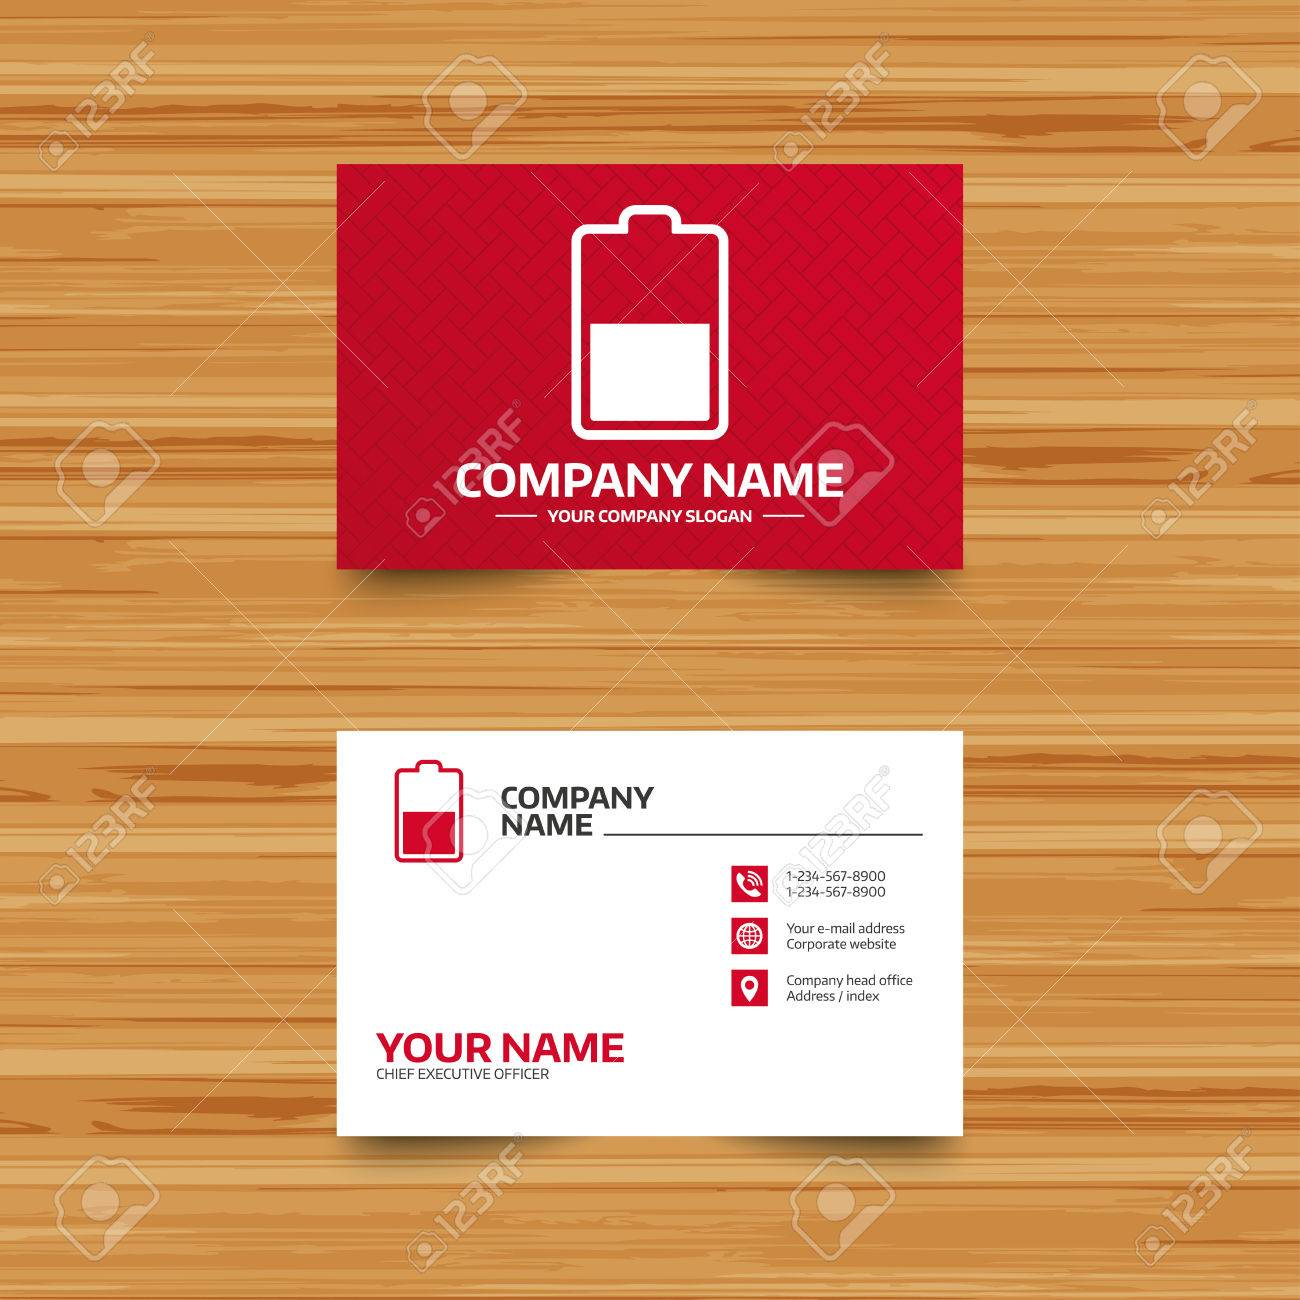 Business card template battery half level sign icon low business card template battery half level sign icon low electricity symbol phone magicingreecefo Choice Image